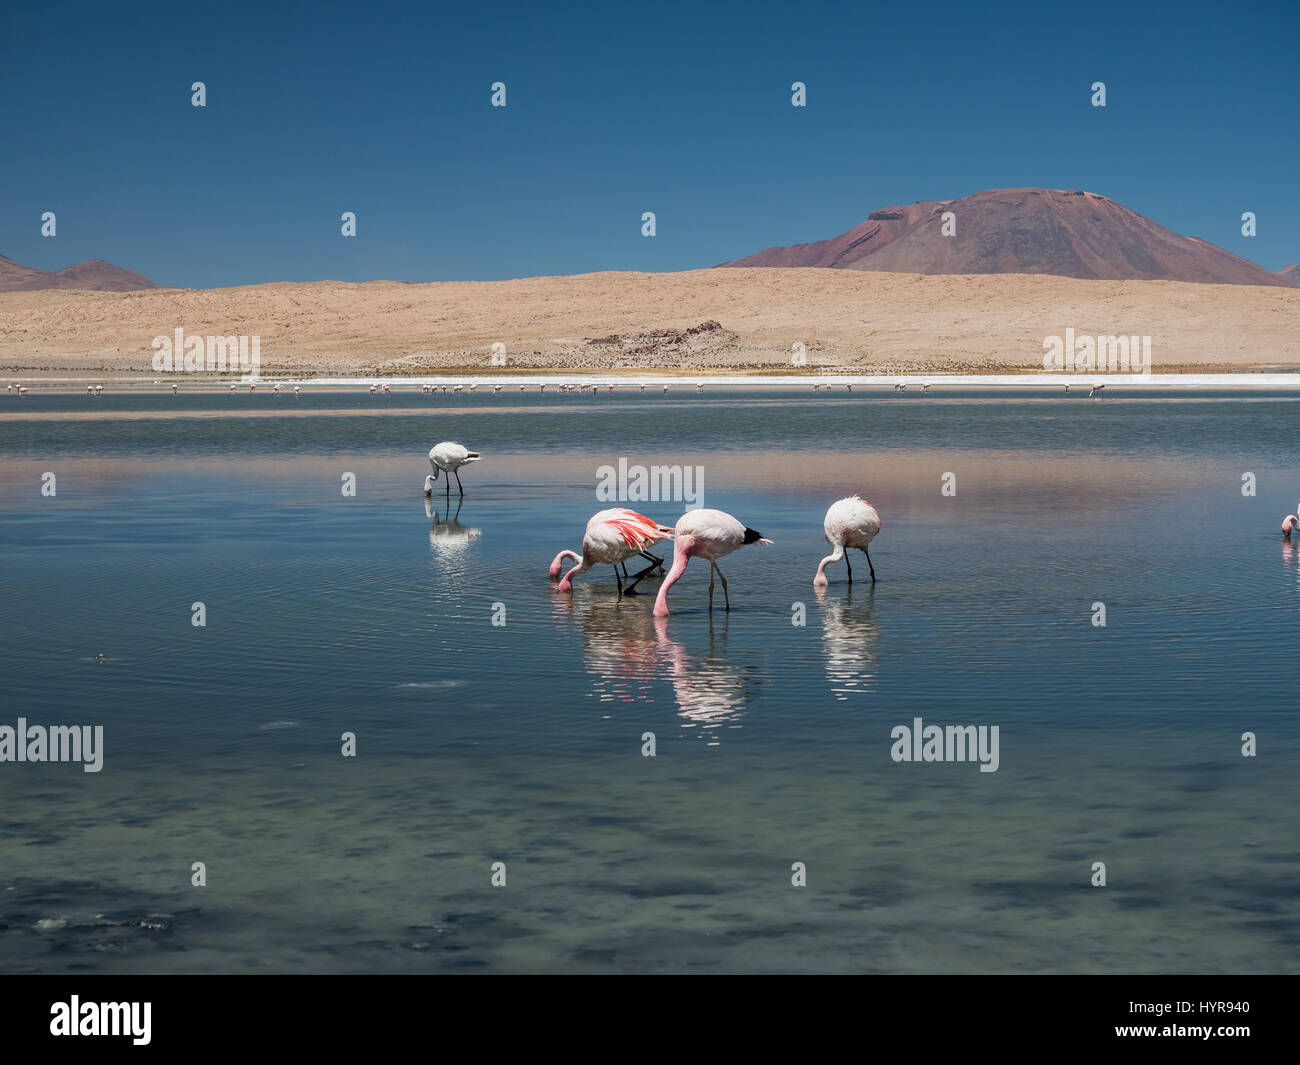 A group of pink flamingos in Laguna Cañapa, these birds are a very common sight in the endorheic salt lake - Stock Image